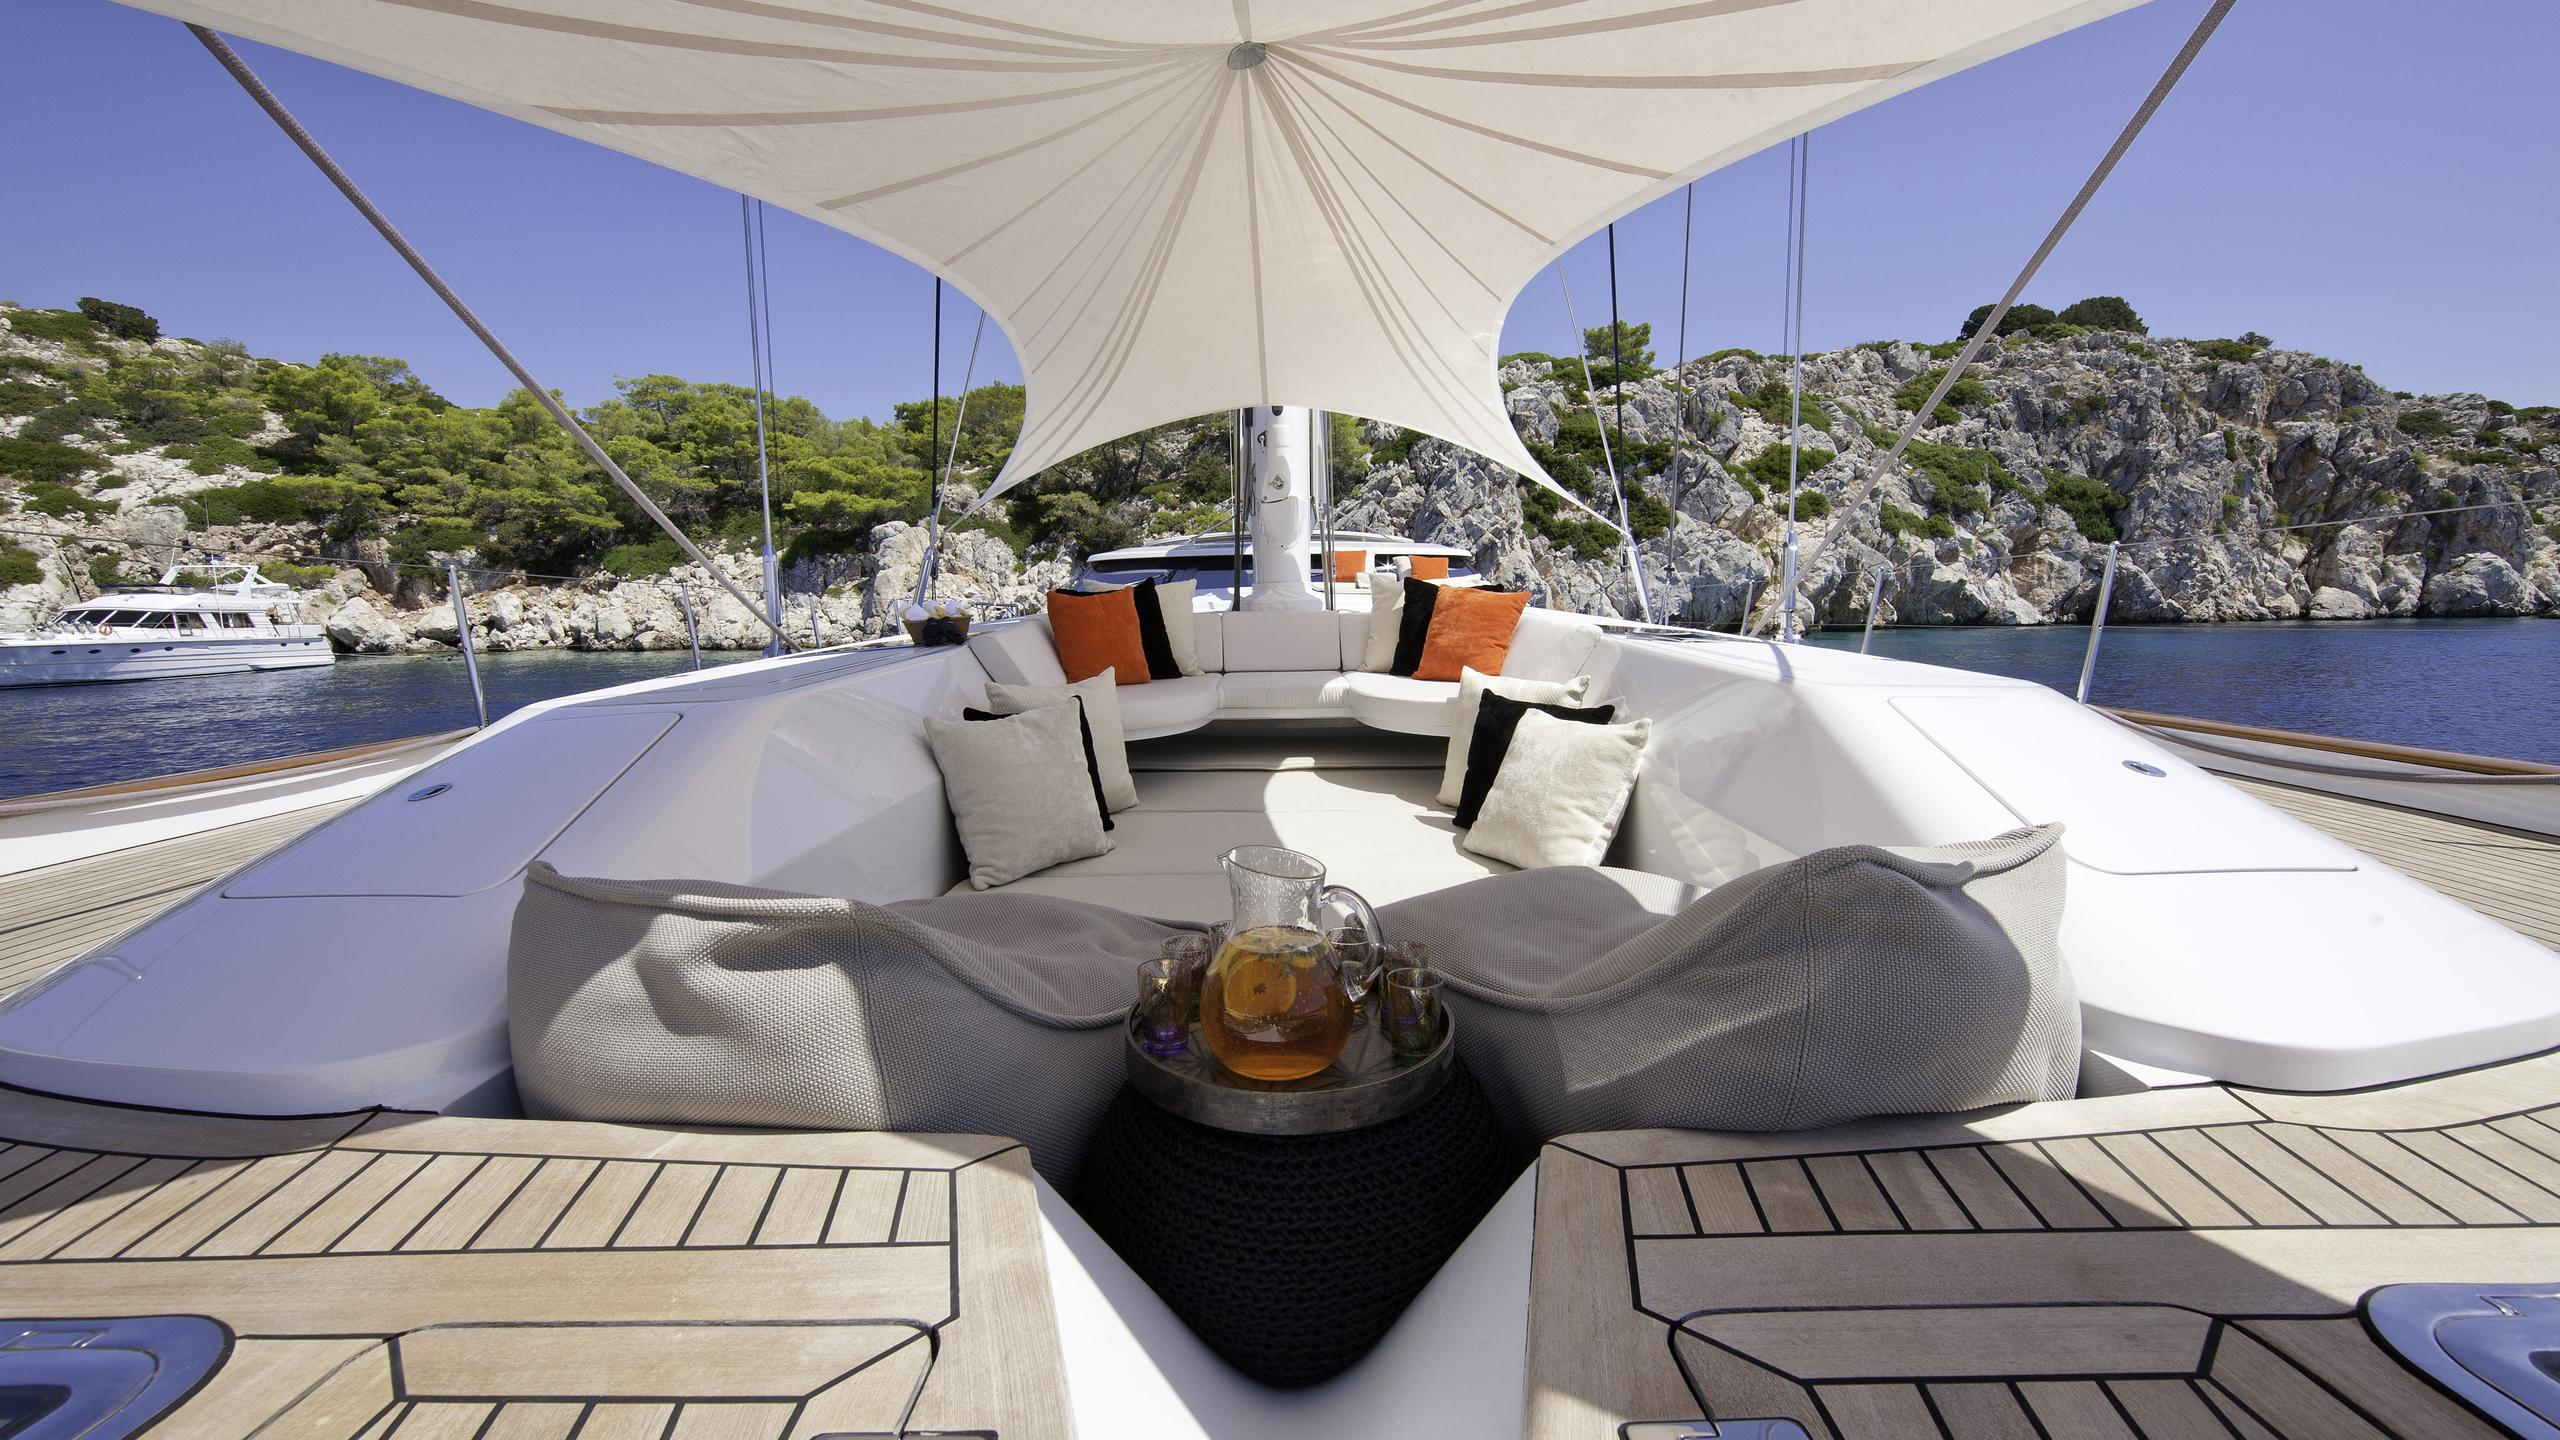 destination-fox-harb'r-yacht-sun-lounger